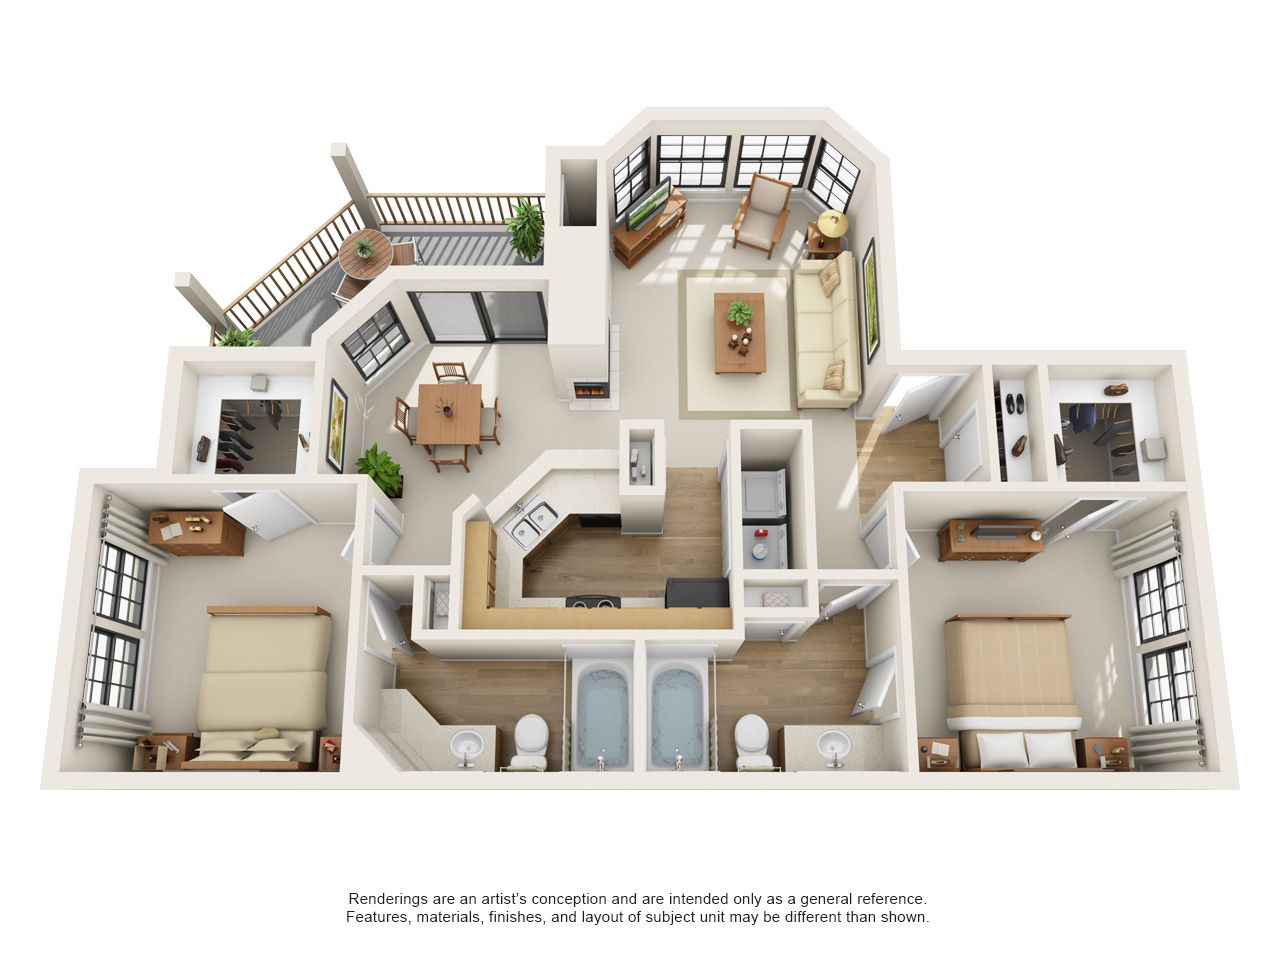 One And Two Bedroom Apartments In Dallas Tx Layouts Dallas Texas Apartment Steadfast Sims House Design Sims 4 House Design Sims House Plans